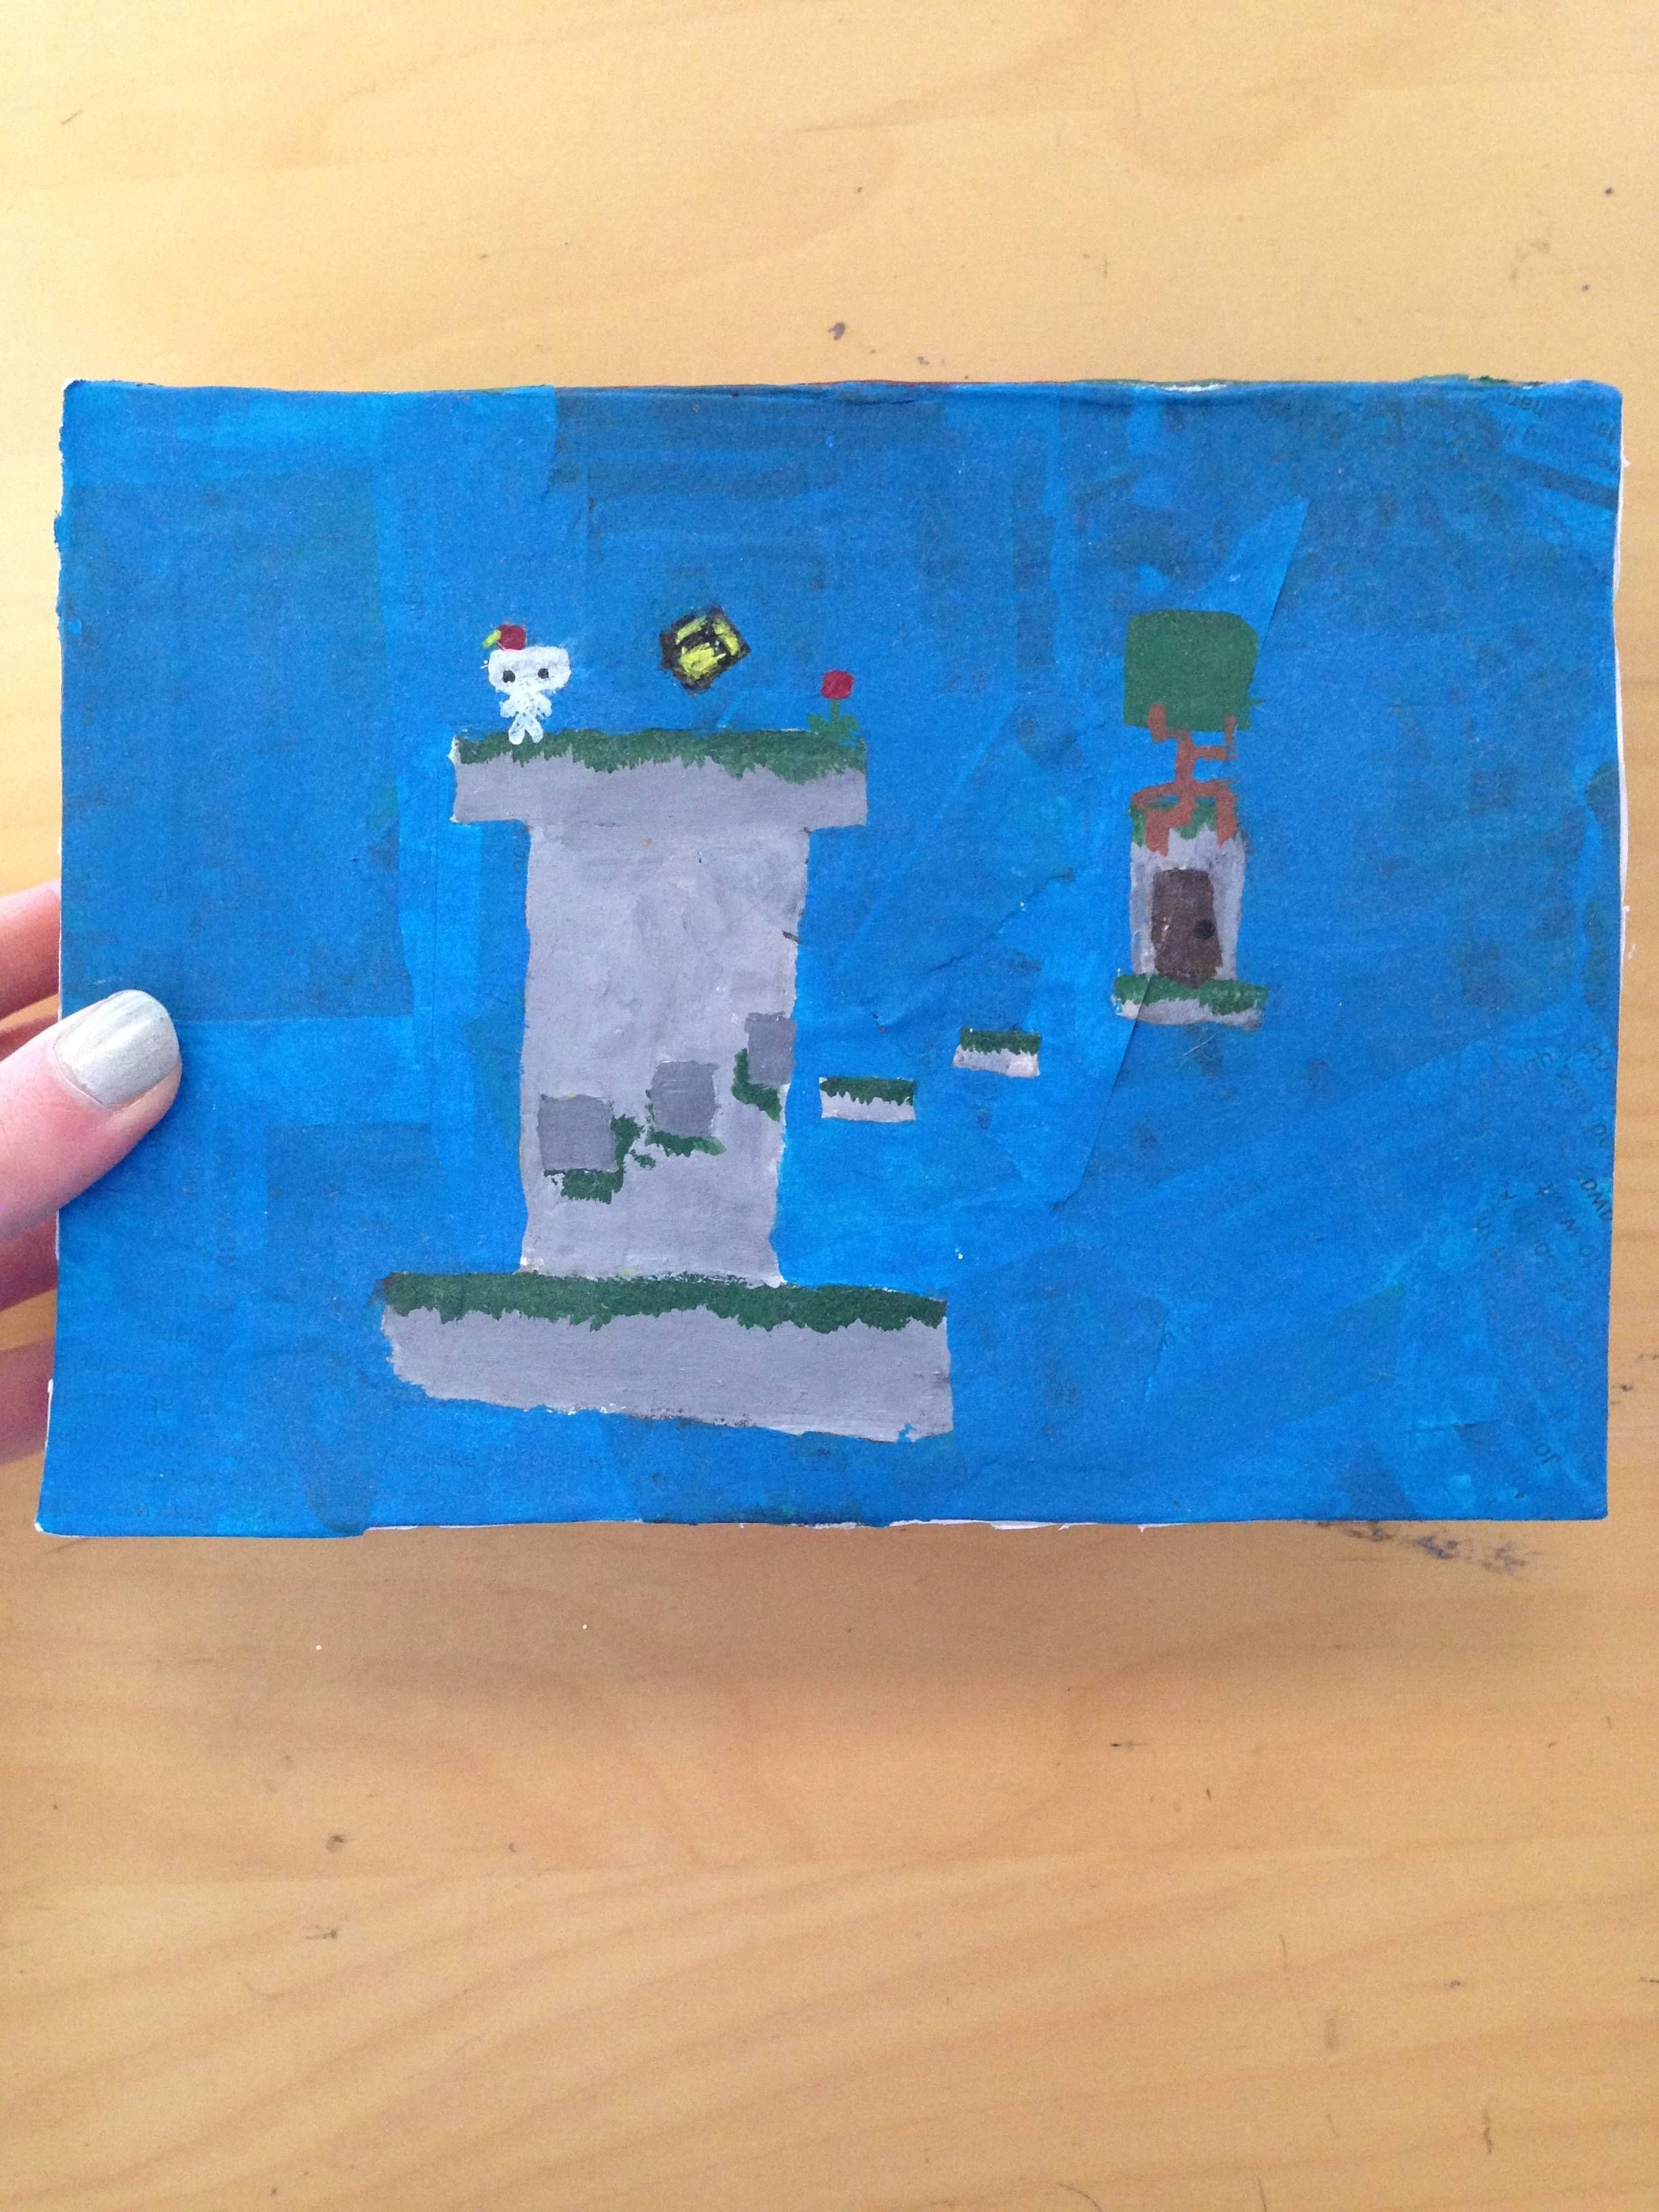 played Fez with my 10 year old sister, she decorated this